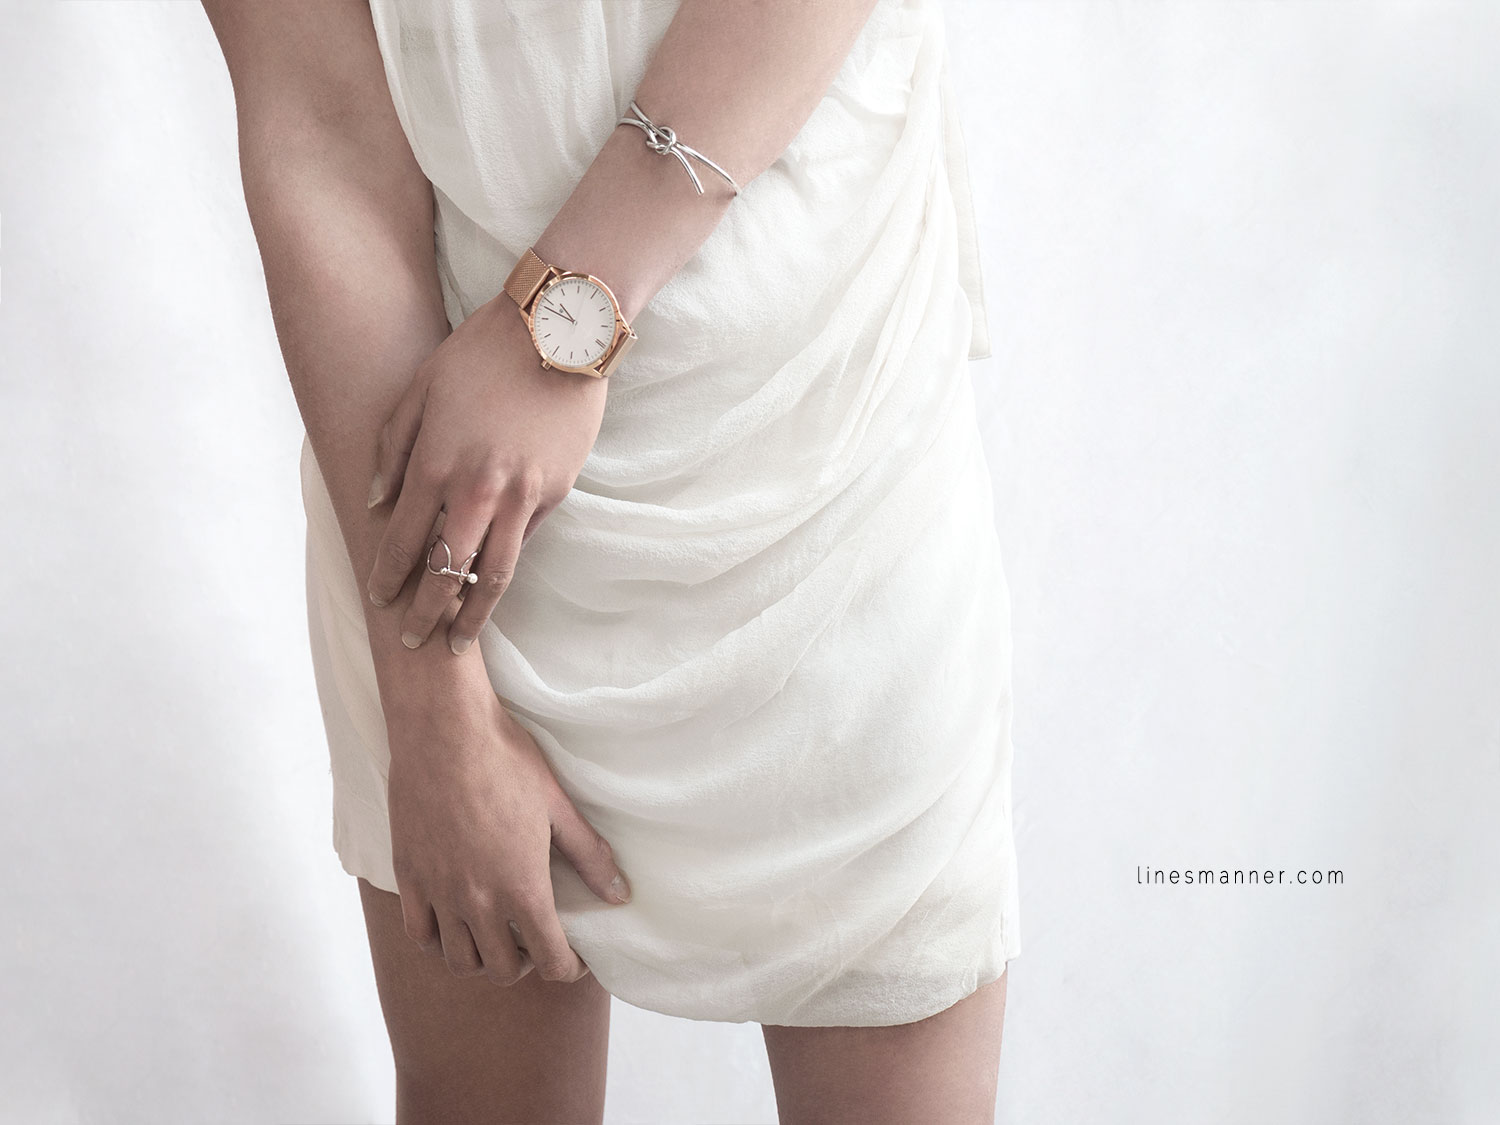 Lines-Manner-Rose_Gold-Under_The_Sun-Details-Essentials-Delicate-Minimal-Watch-Elegant-Effortless-3